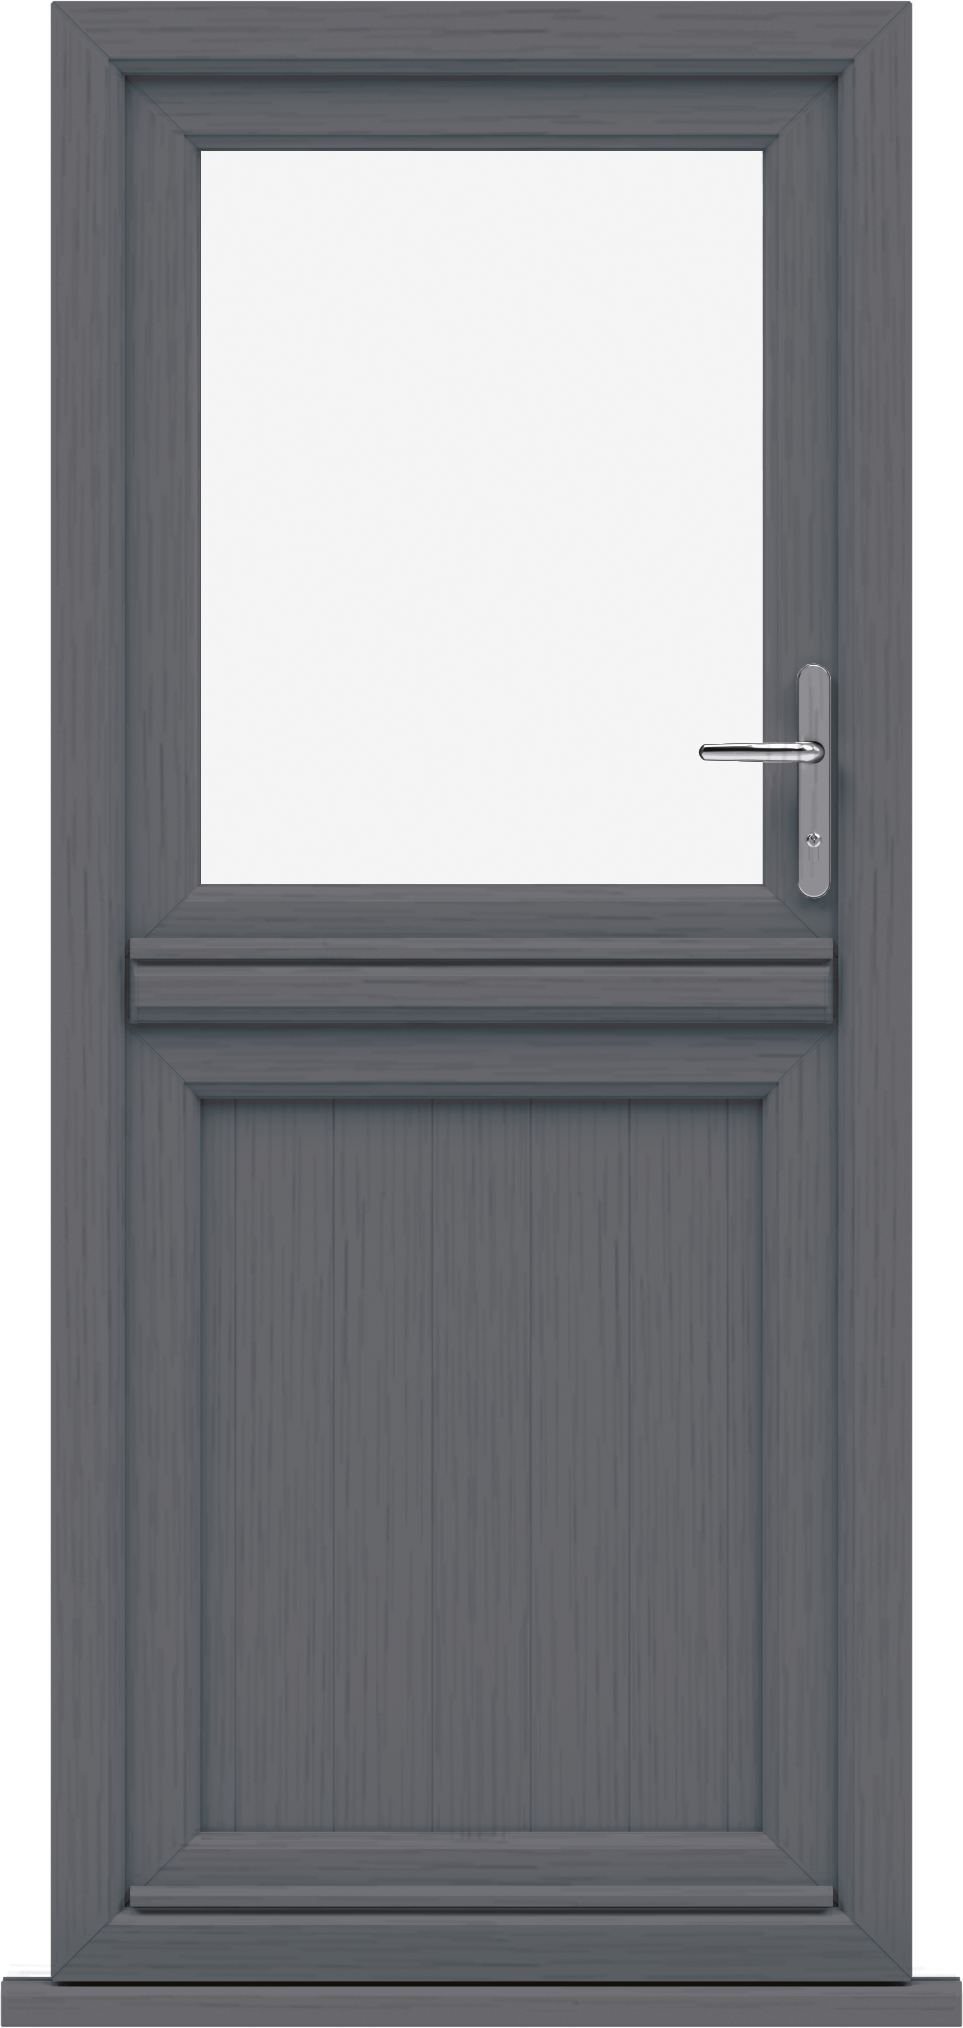 Southgate Windows Trade Upvc Stable Doors Bridgwater